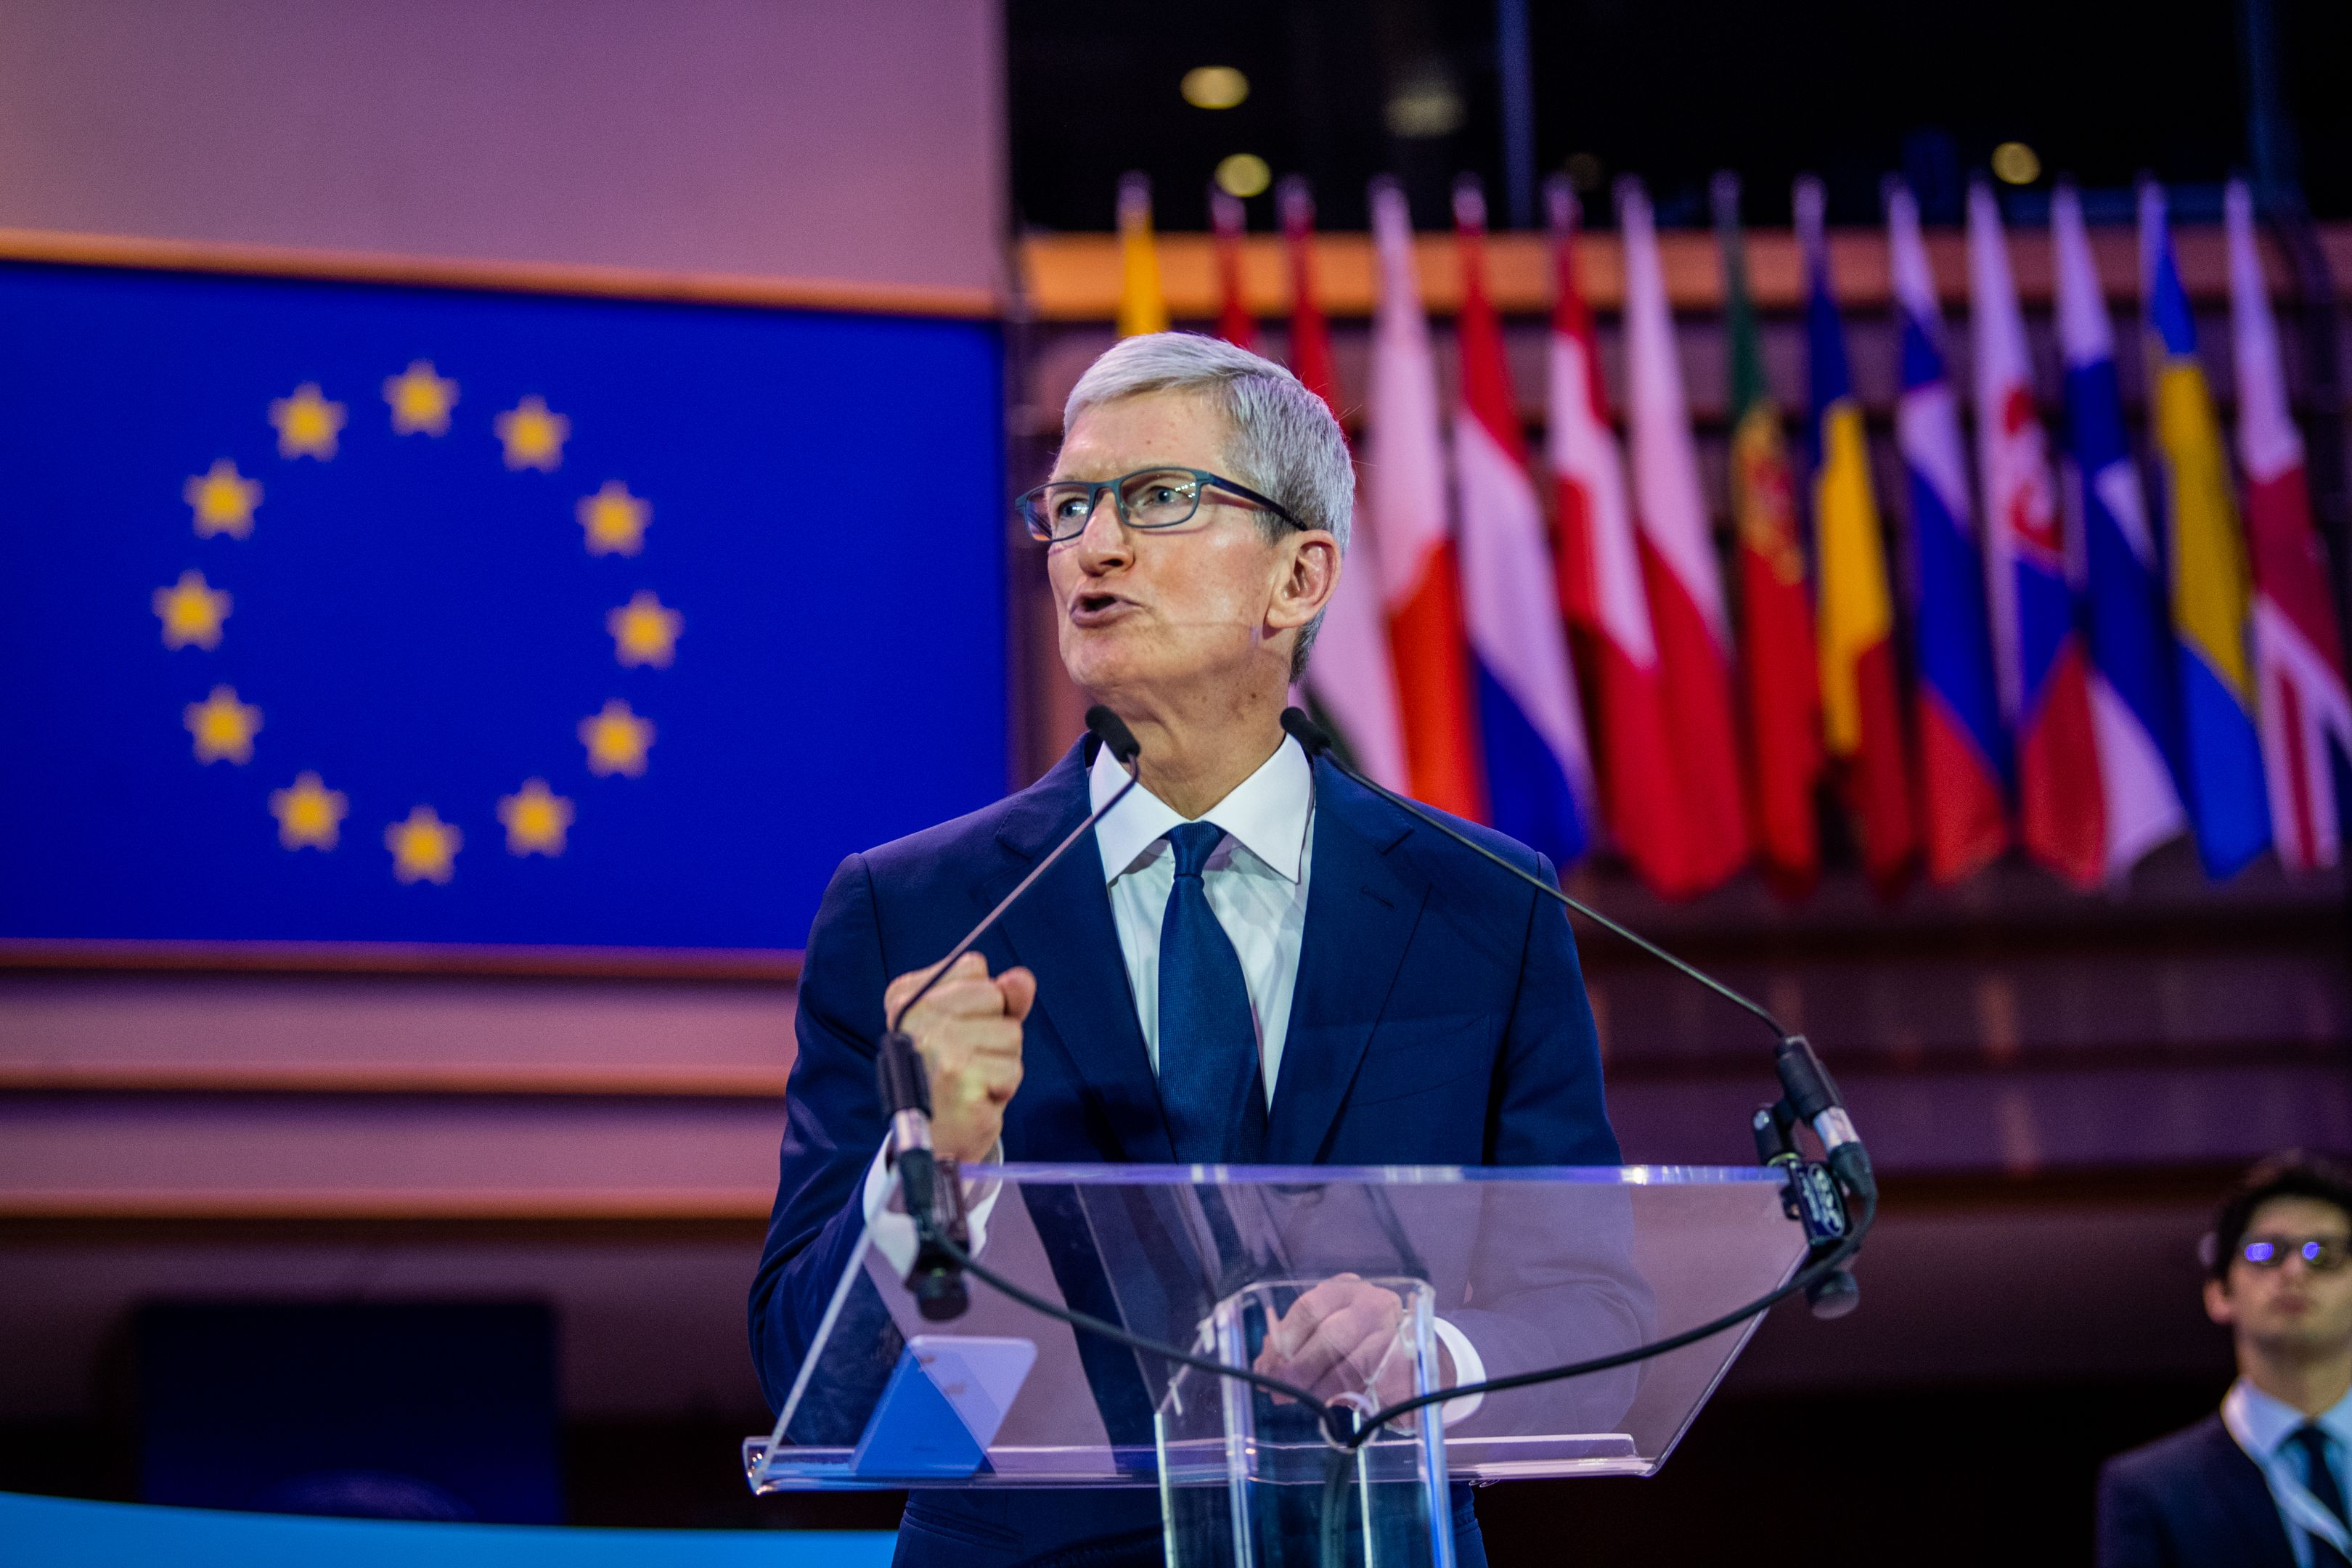 Tim Cook                     40th International Conference of Data Protection and Privacy Commissioners, Brussels, Belgium - 24 Oct 2018